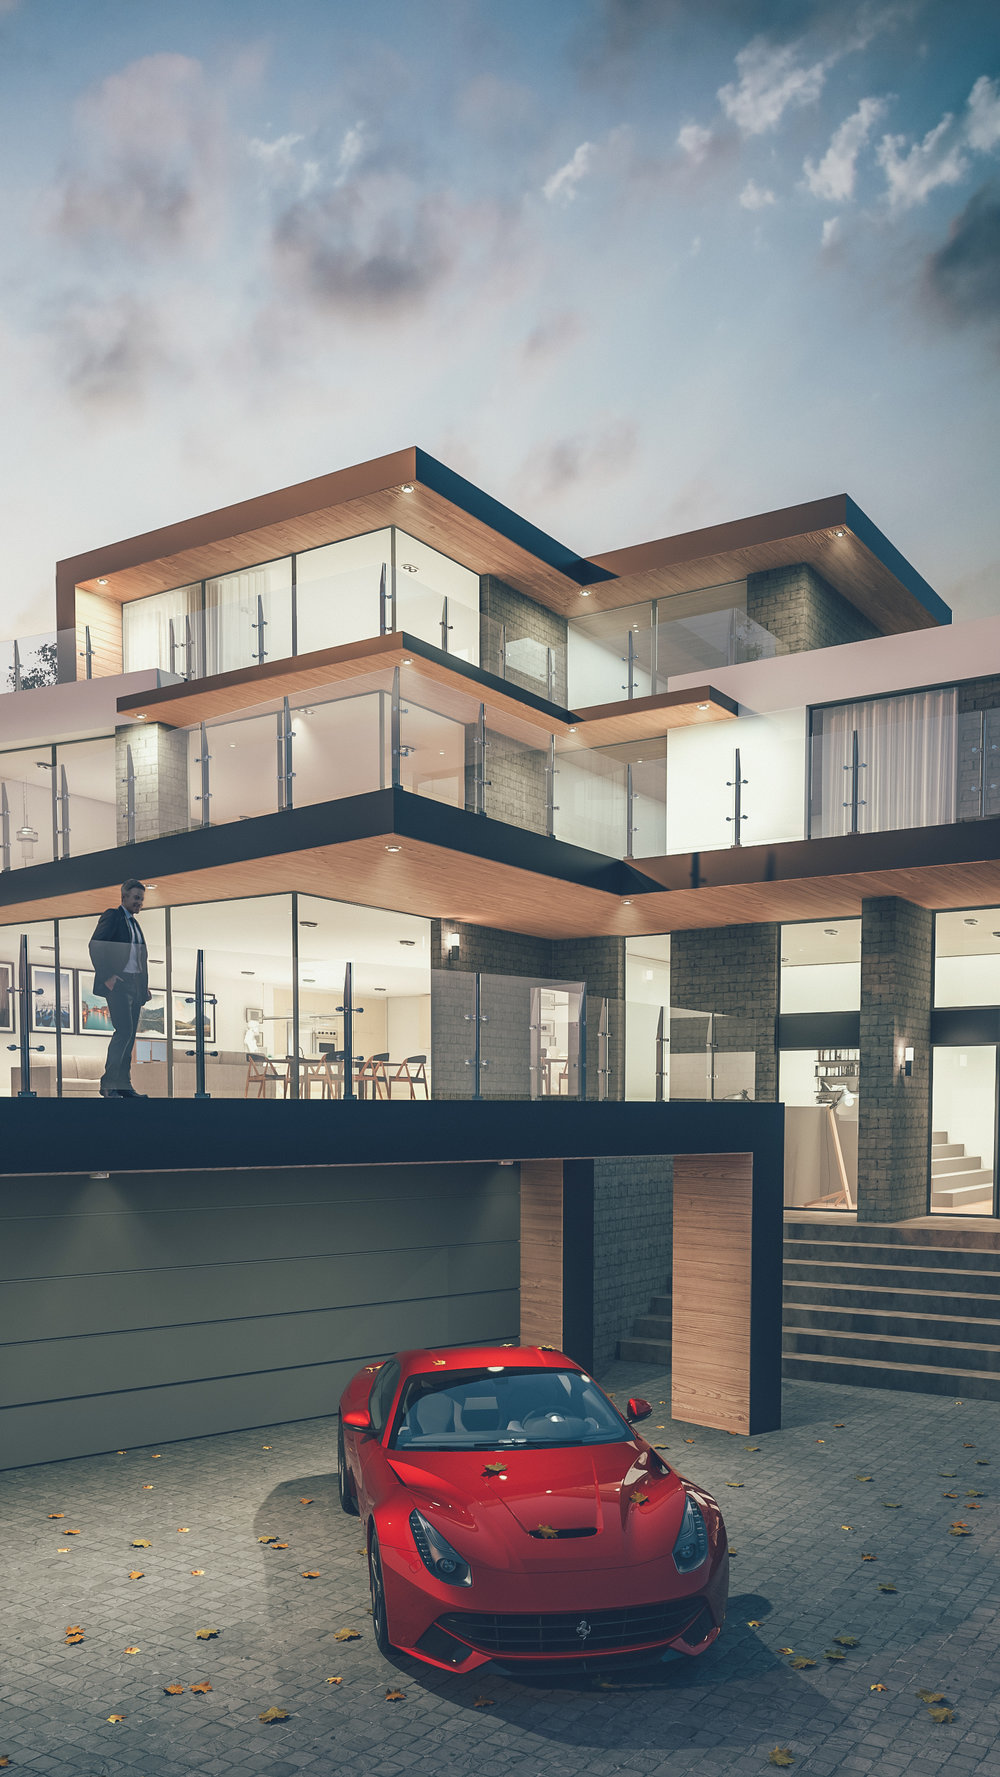 About - I create bespoke CGI's for exteriors, interiors and floor plans to bring your projects to life whether it's for planning, sales or conceptual purposes.